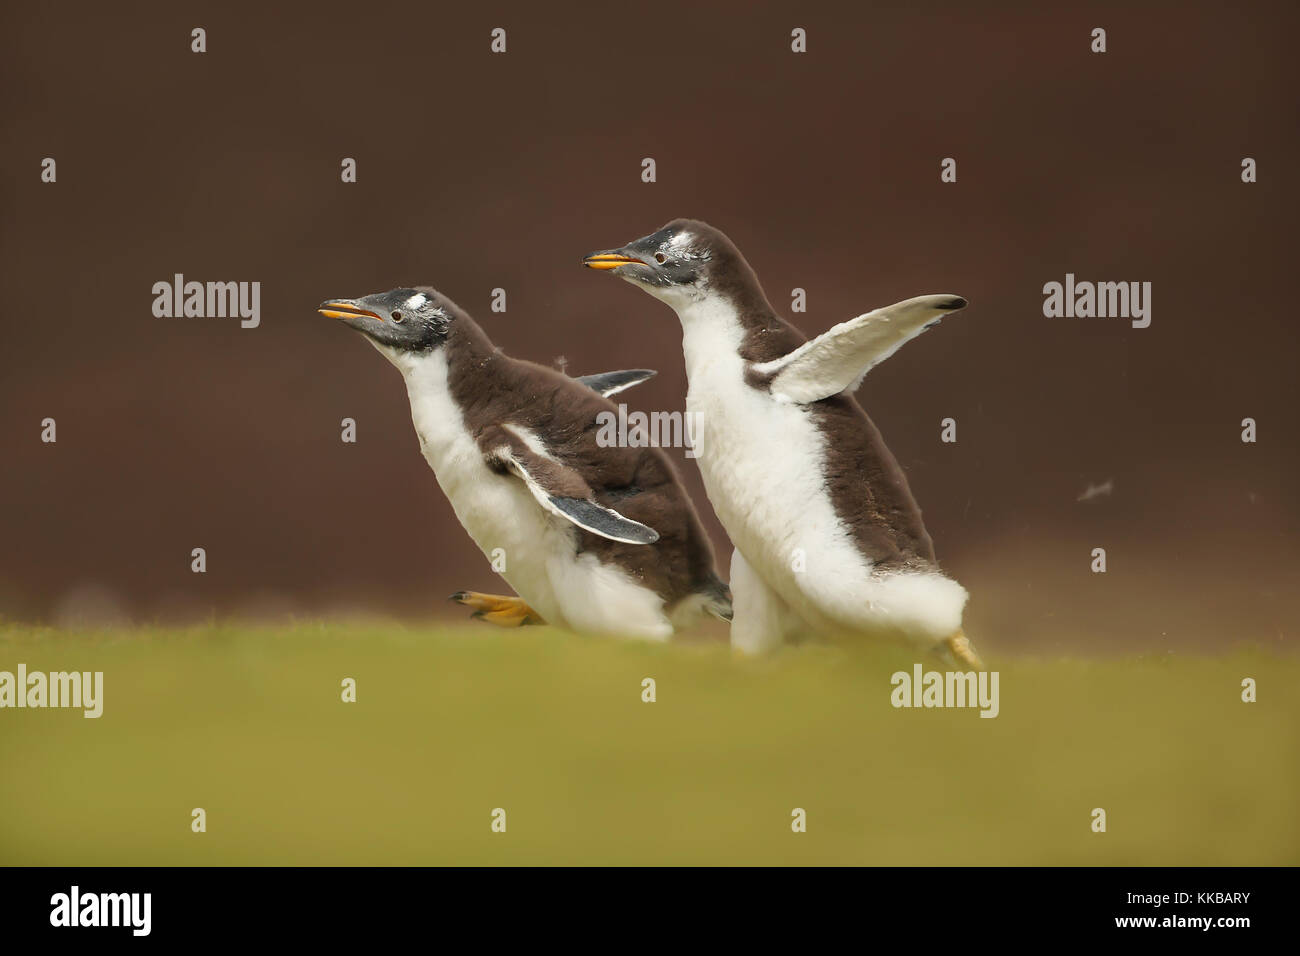 Two young gentoo penguins chasing each other, Falkland islands - Stock Image